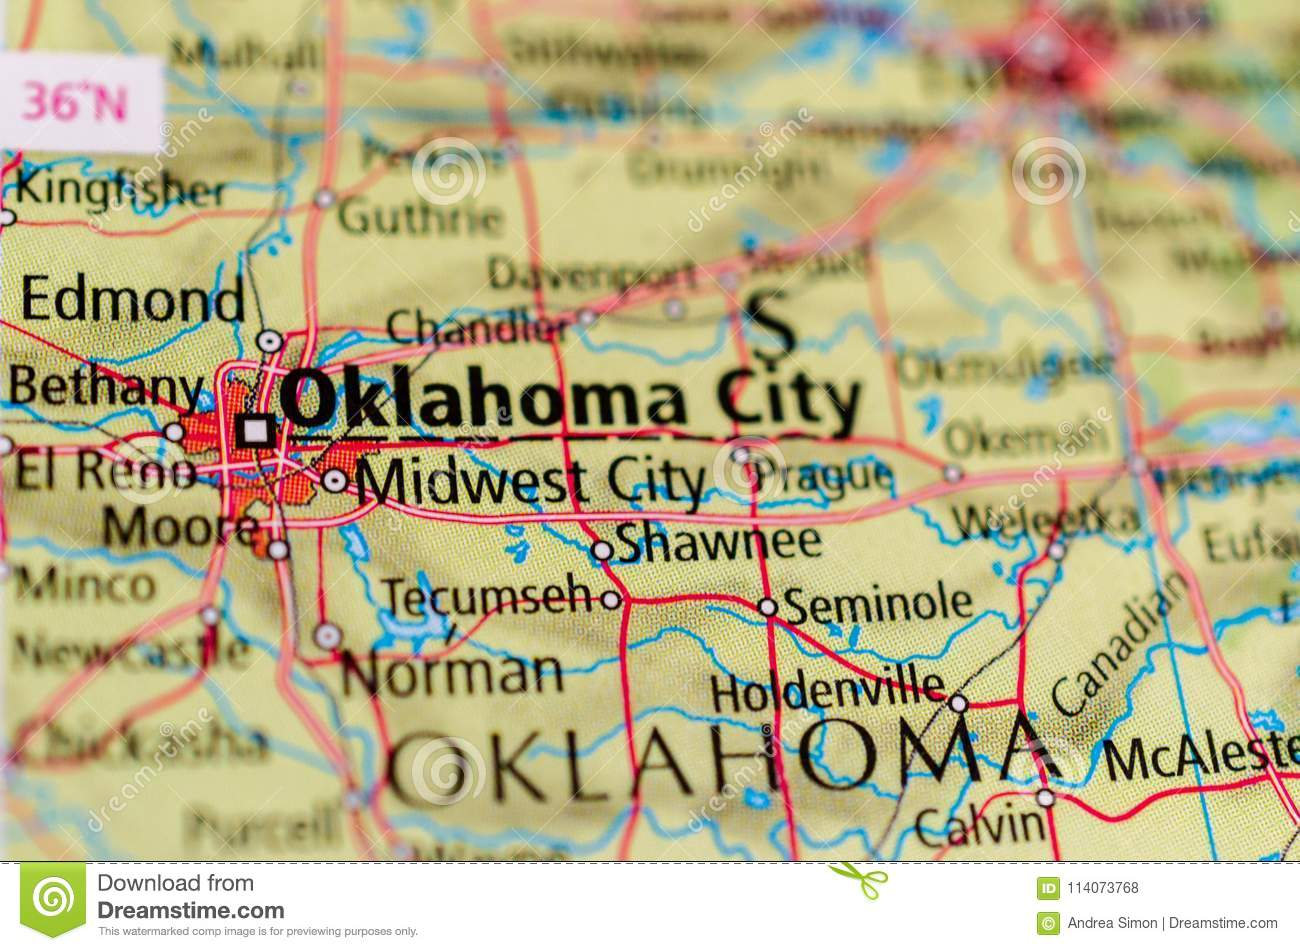 Oklahoma City on map stock photo. Image of coordinates - 114073768